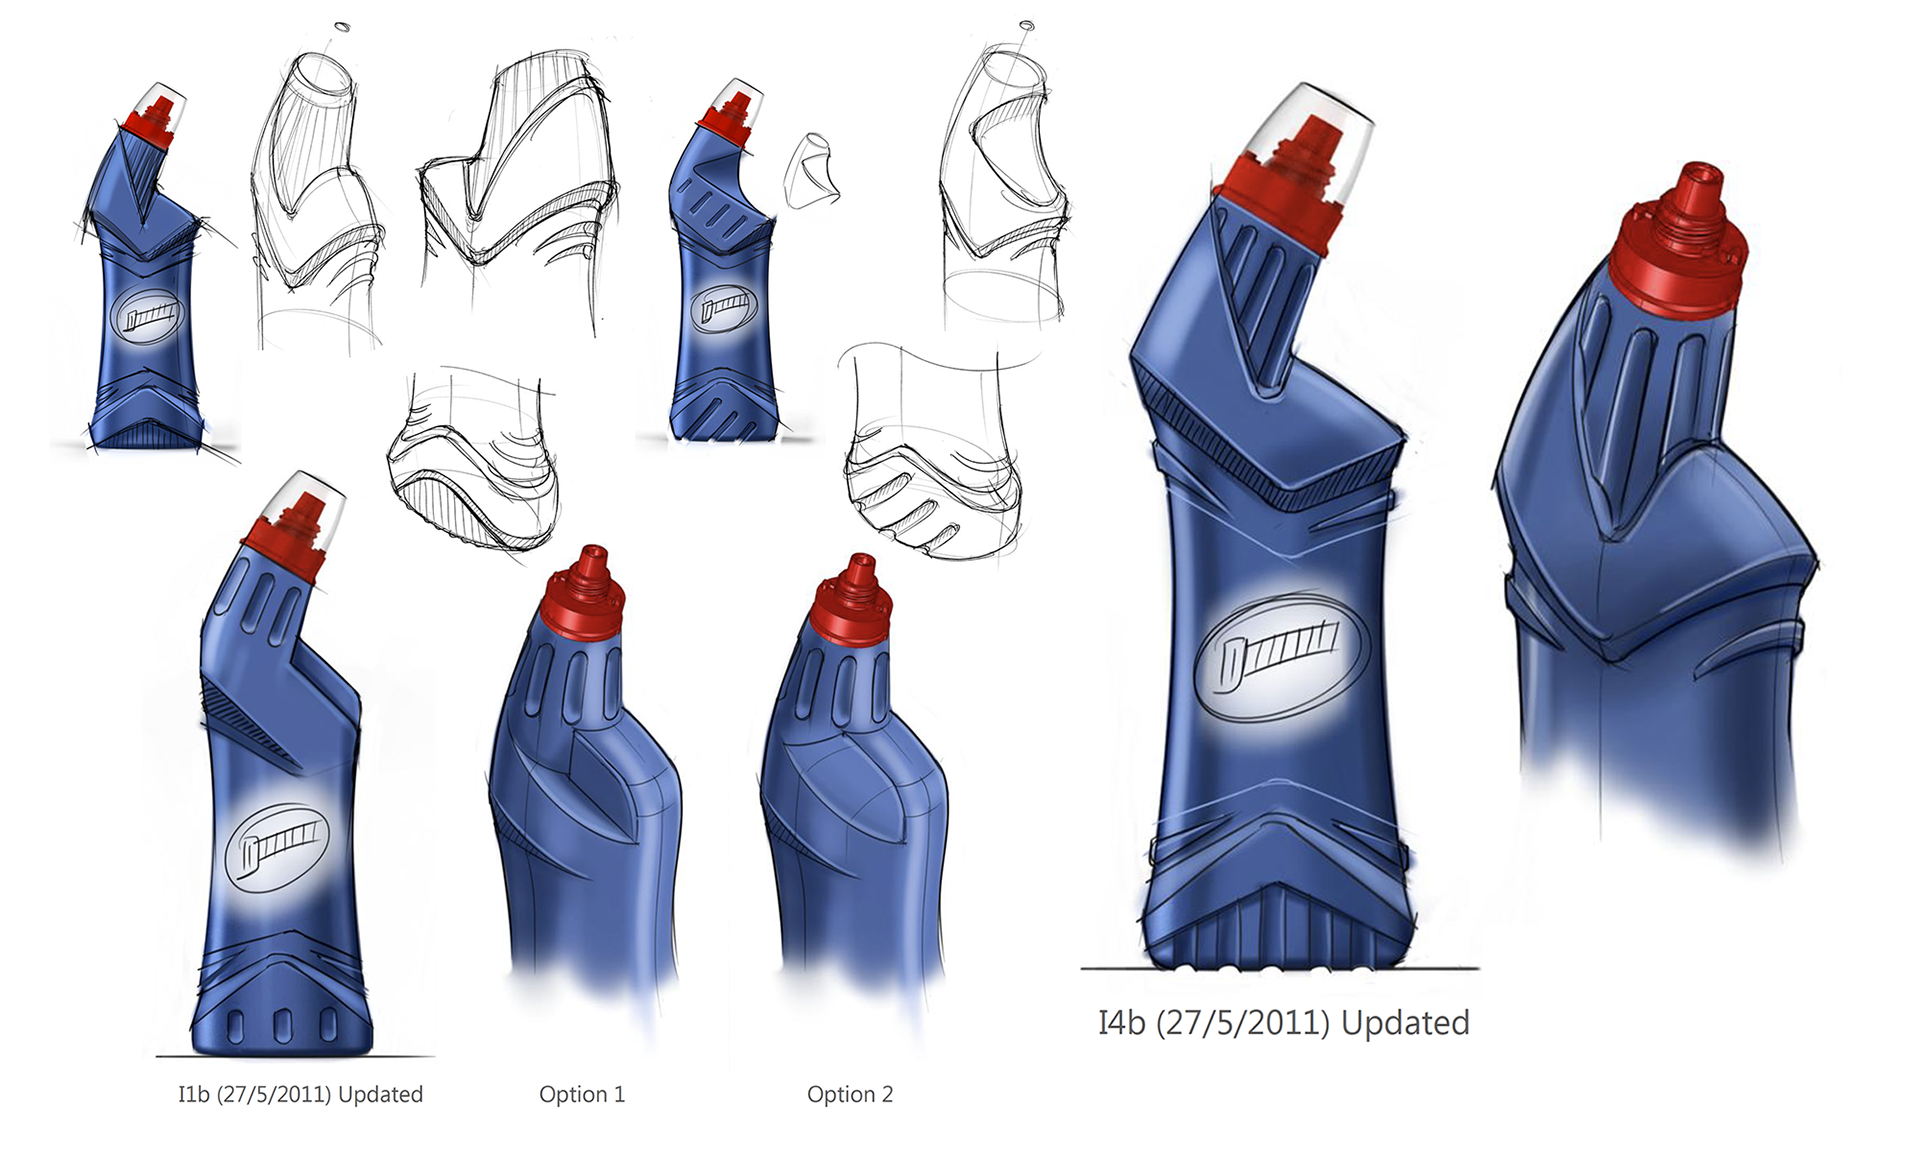 At this point, mechanical engineer and product designer worked closely together to define details that would allow for a robust, ergonomic bottle that returned to shape after being squeezed, yet still communicated the desired visual messages. This was done through sketches for speed